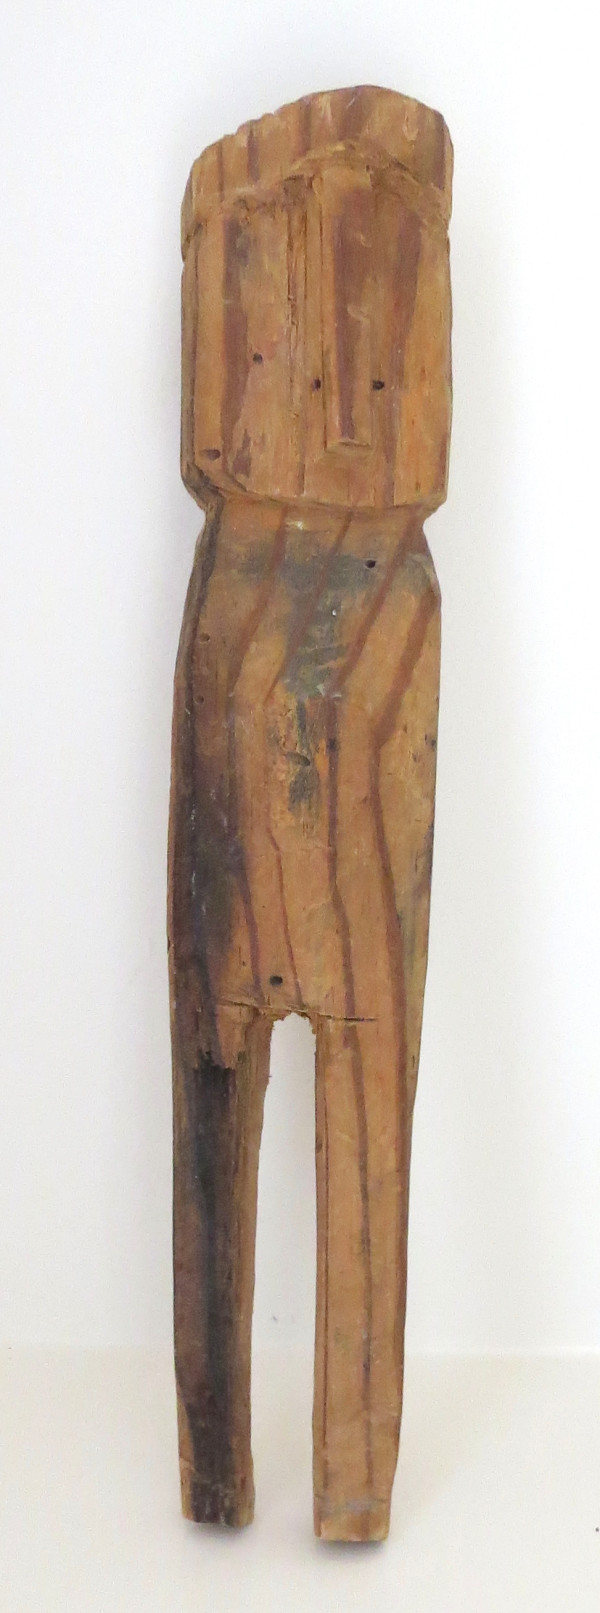 Wooden Doll by Unidentified